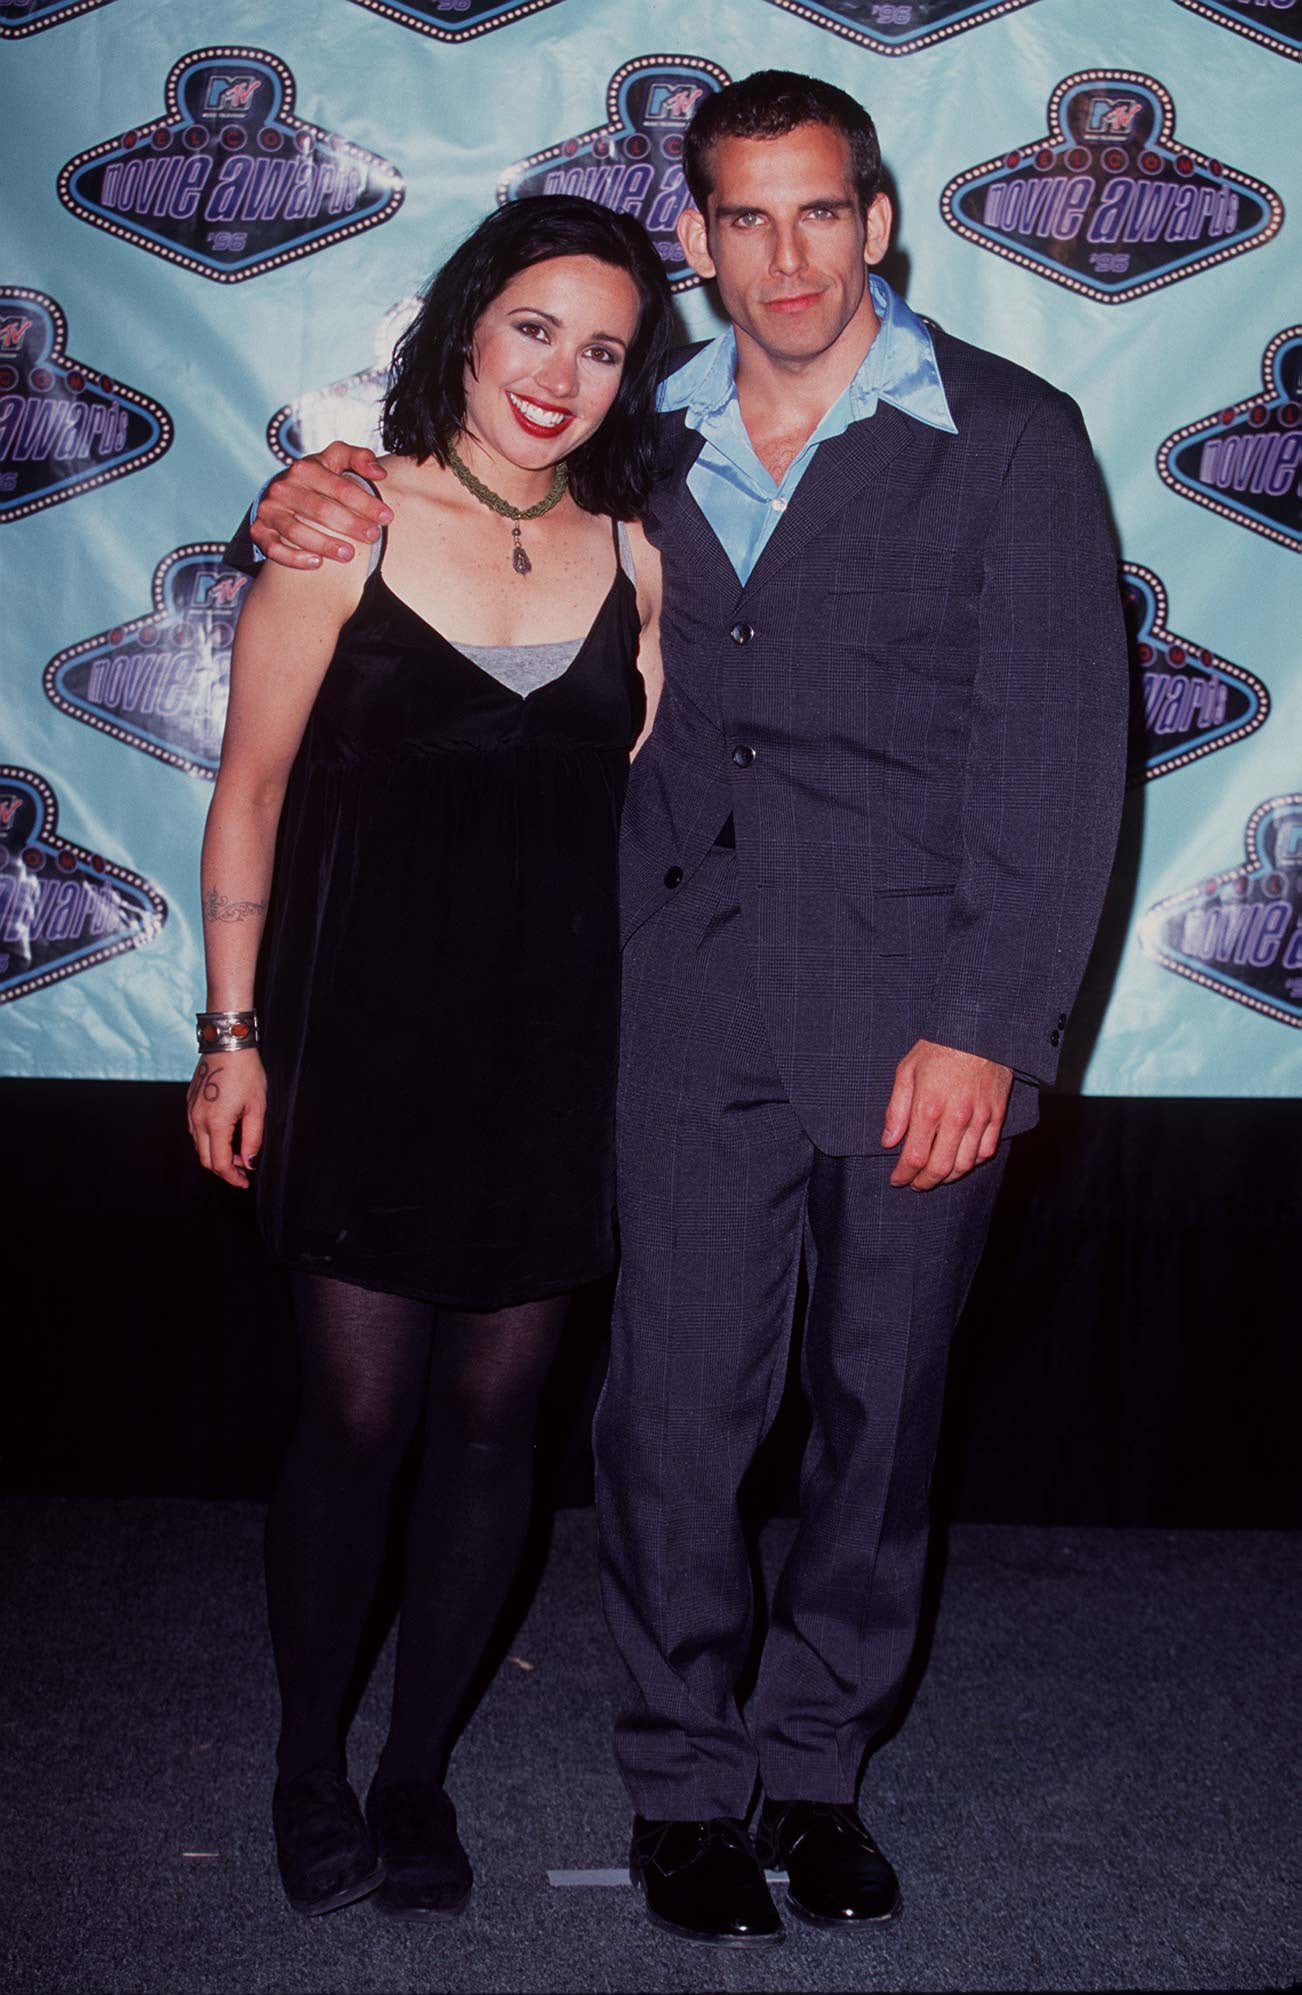 Janeane Garofalo and ben stiller